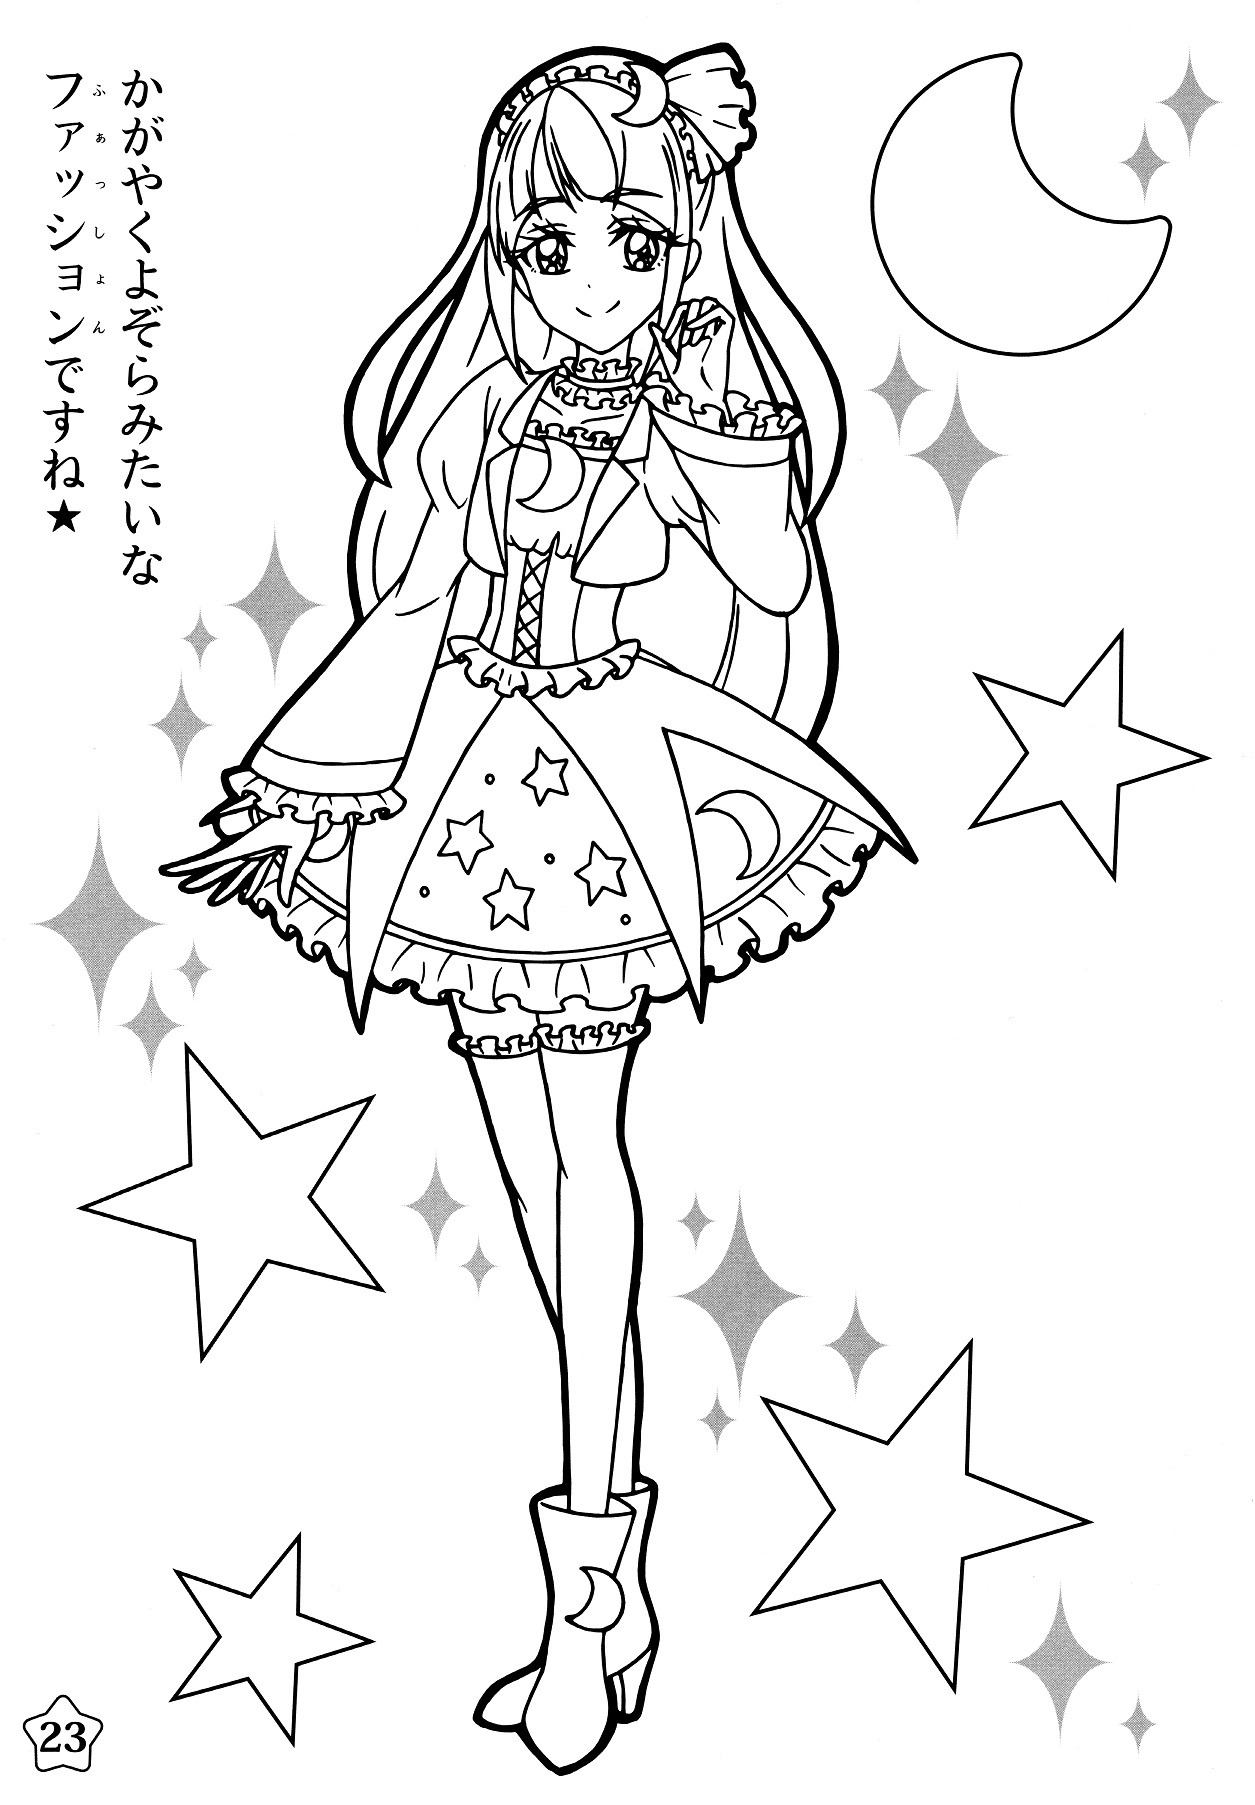 twinkle star coloring page beautiful star twinkle precure coloring pages sugar and twinkle page coloring star